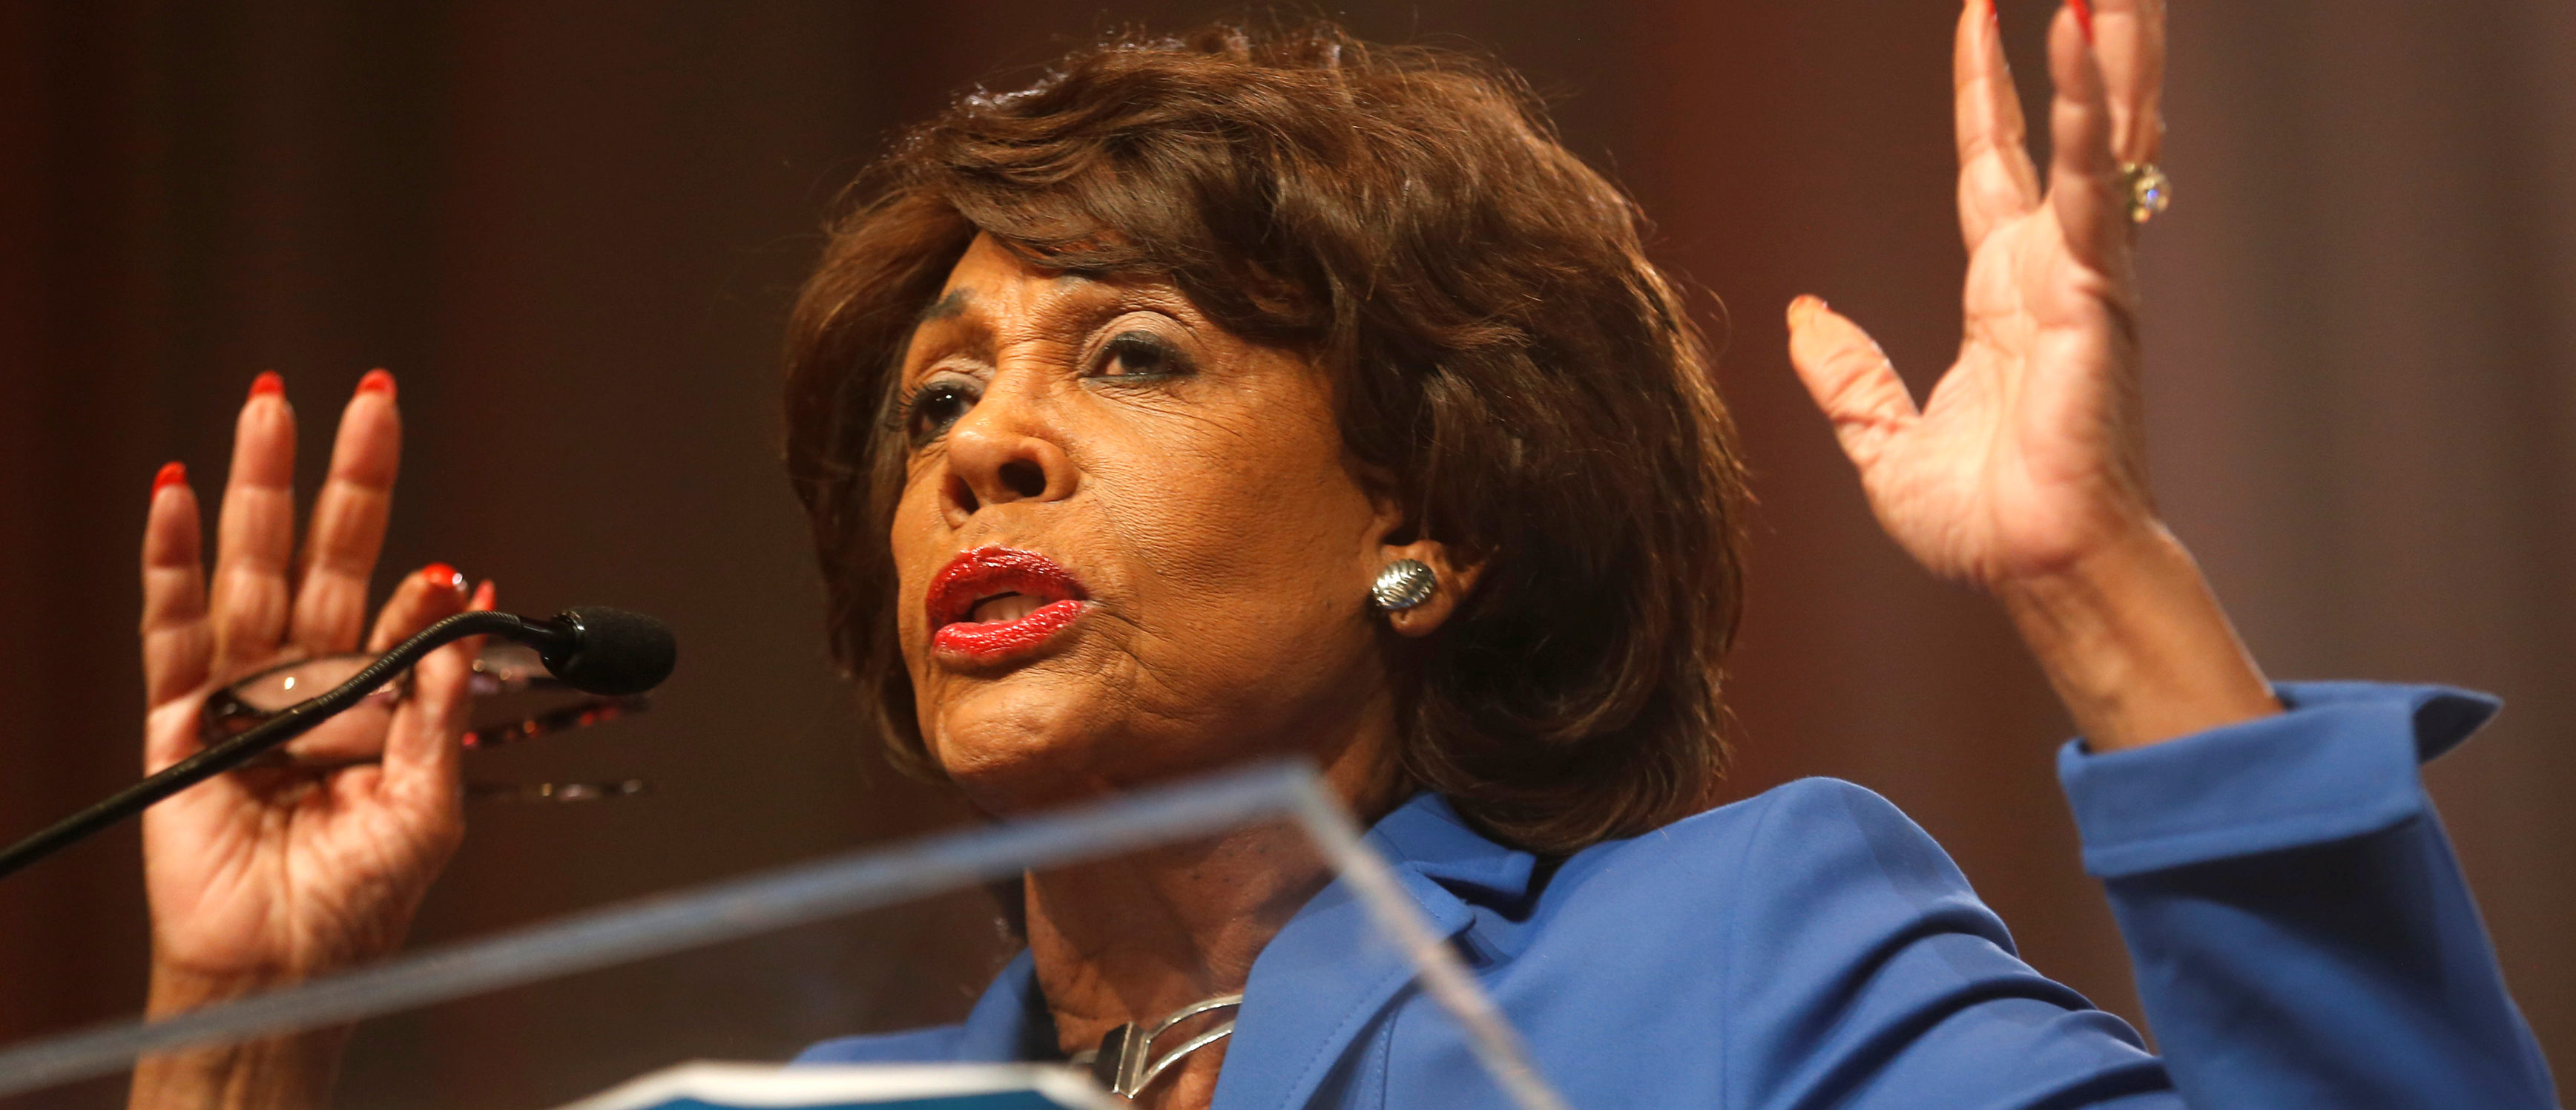 CNN Commentator: Maxine Could Be 2020 Democrat Nominee For President